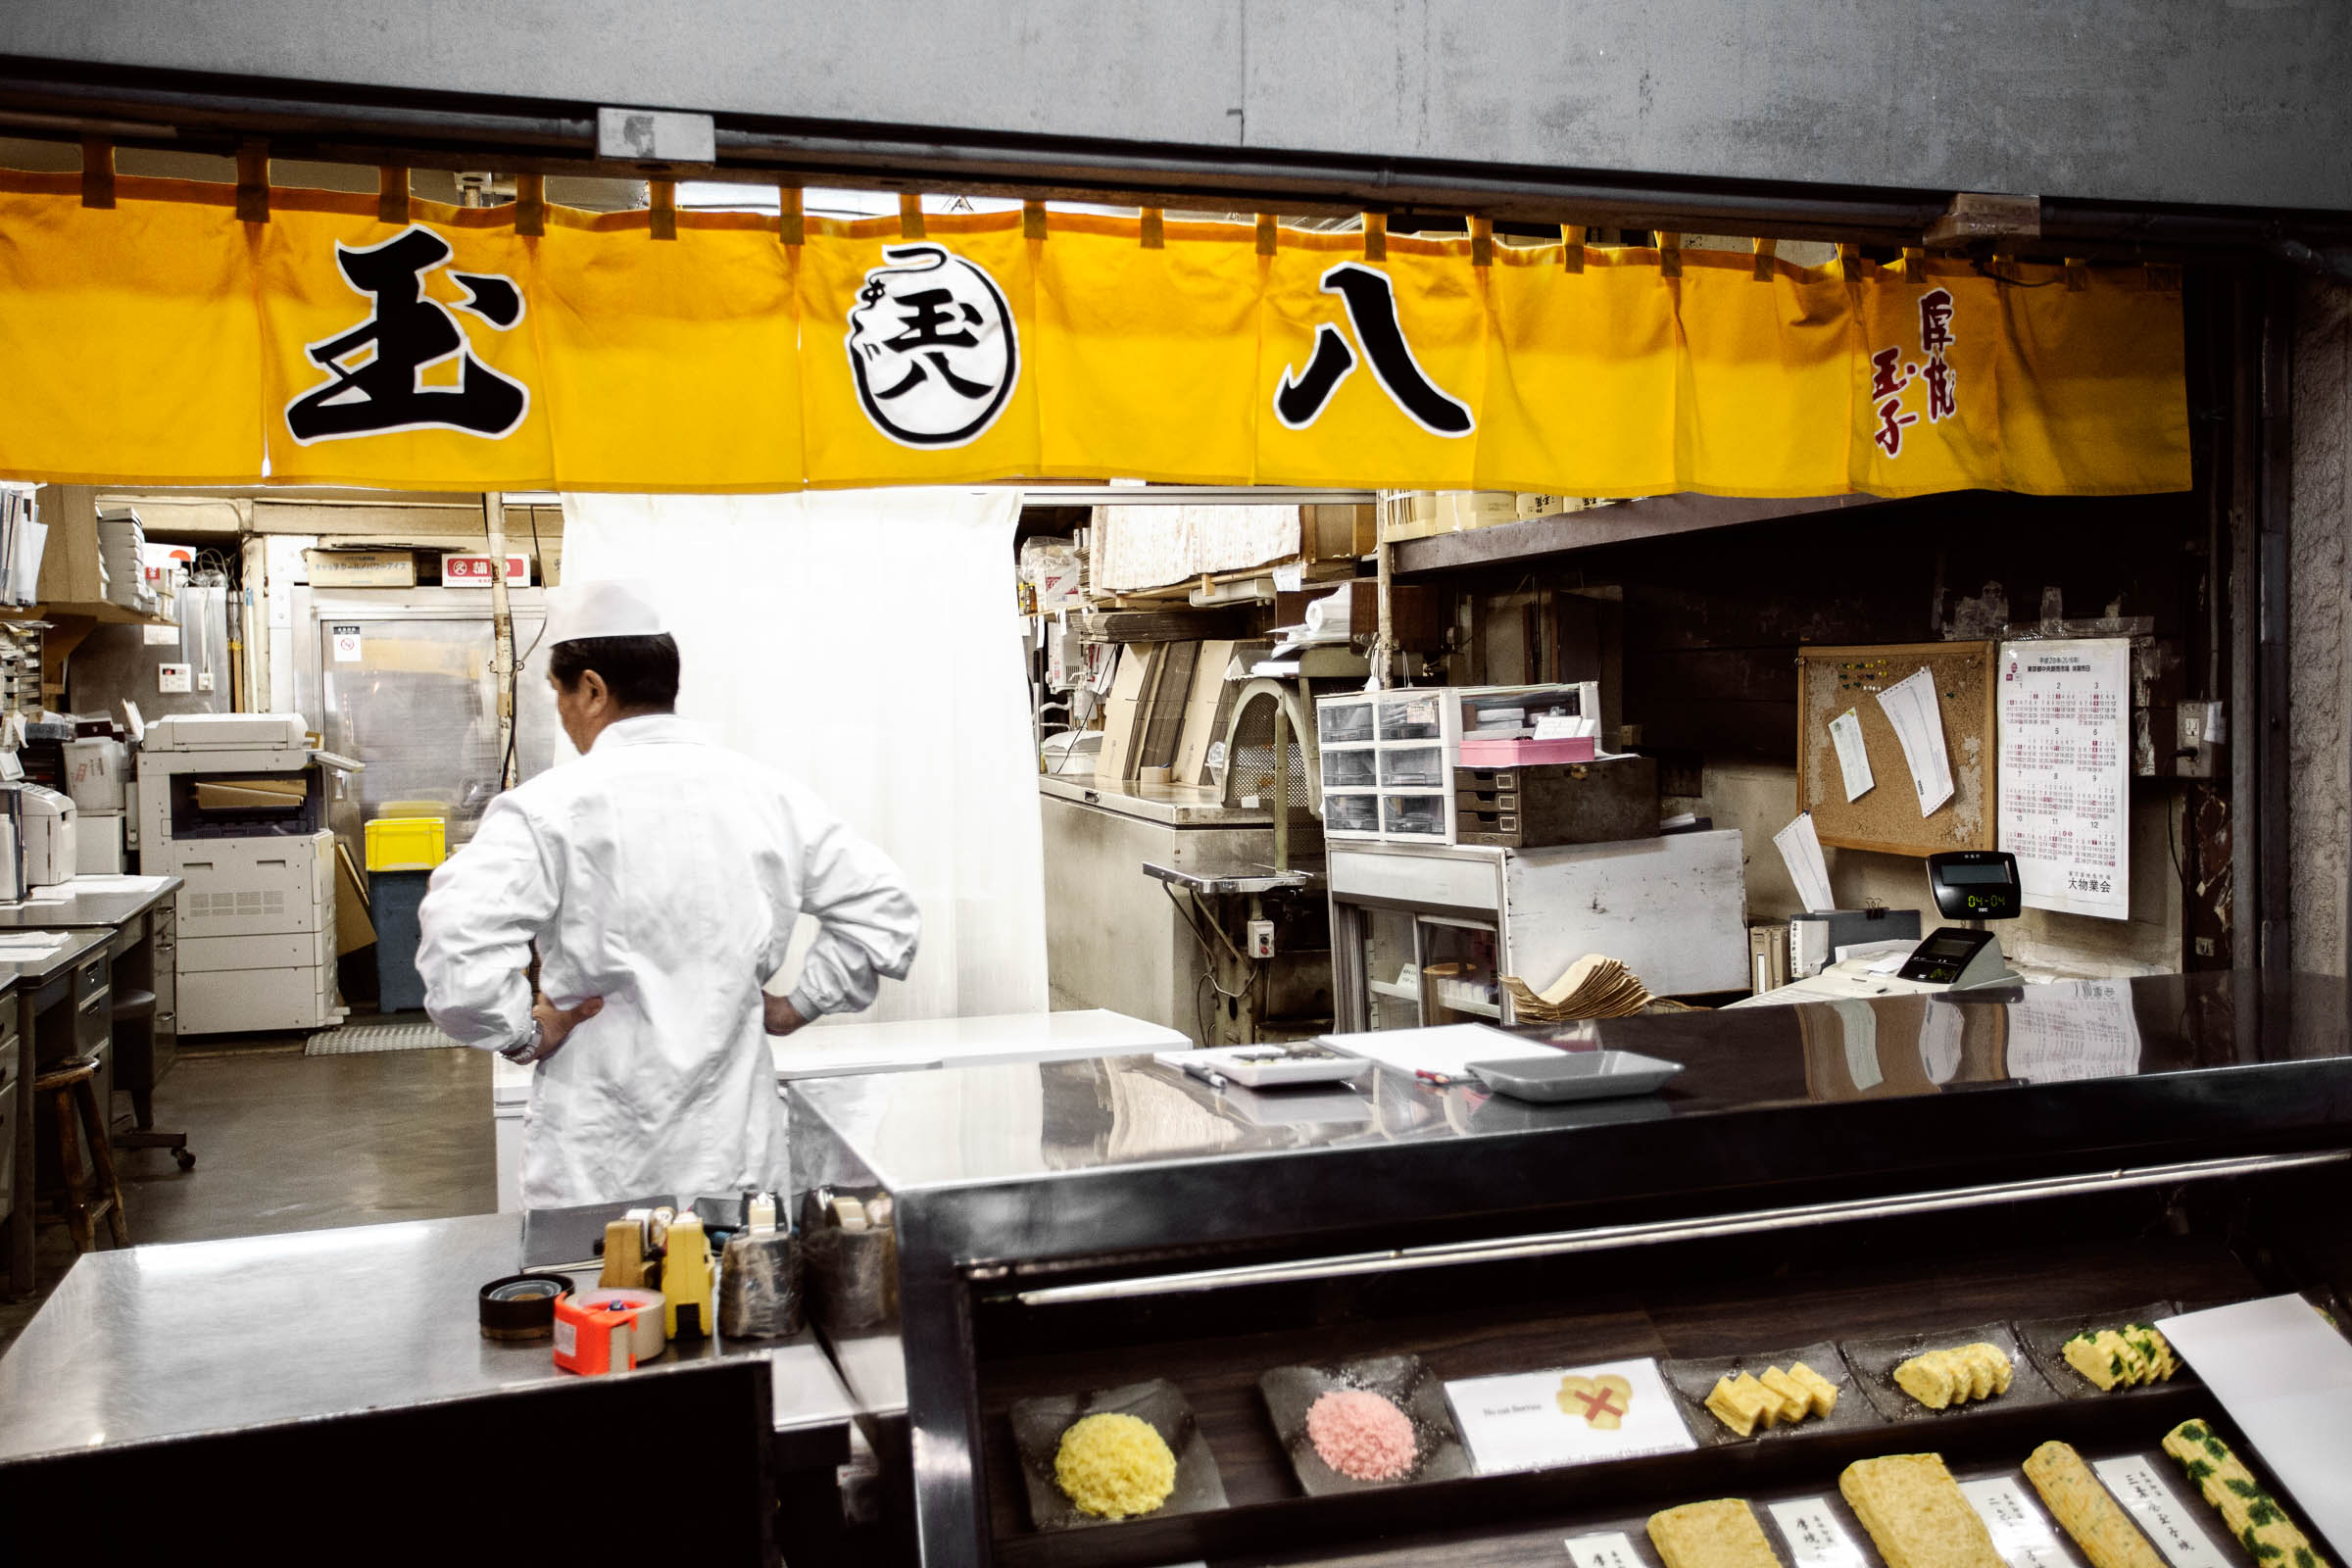 Chacon Images_Japan_Web-140.jpg